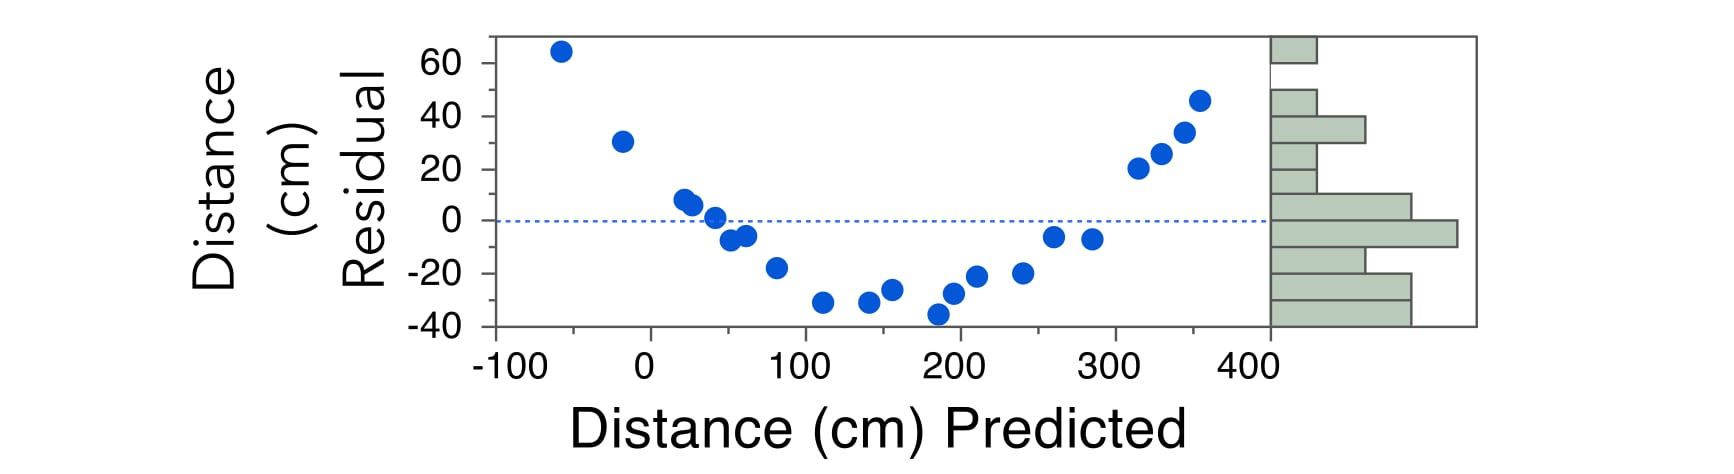 Distance by Time - Residuals from Simple Linear Regression